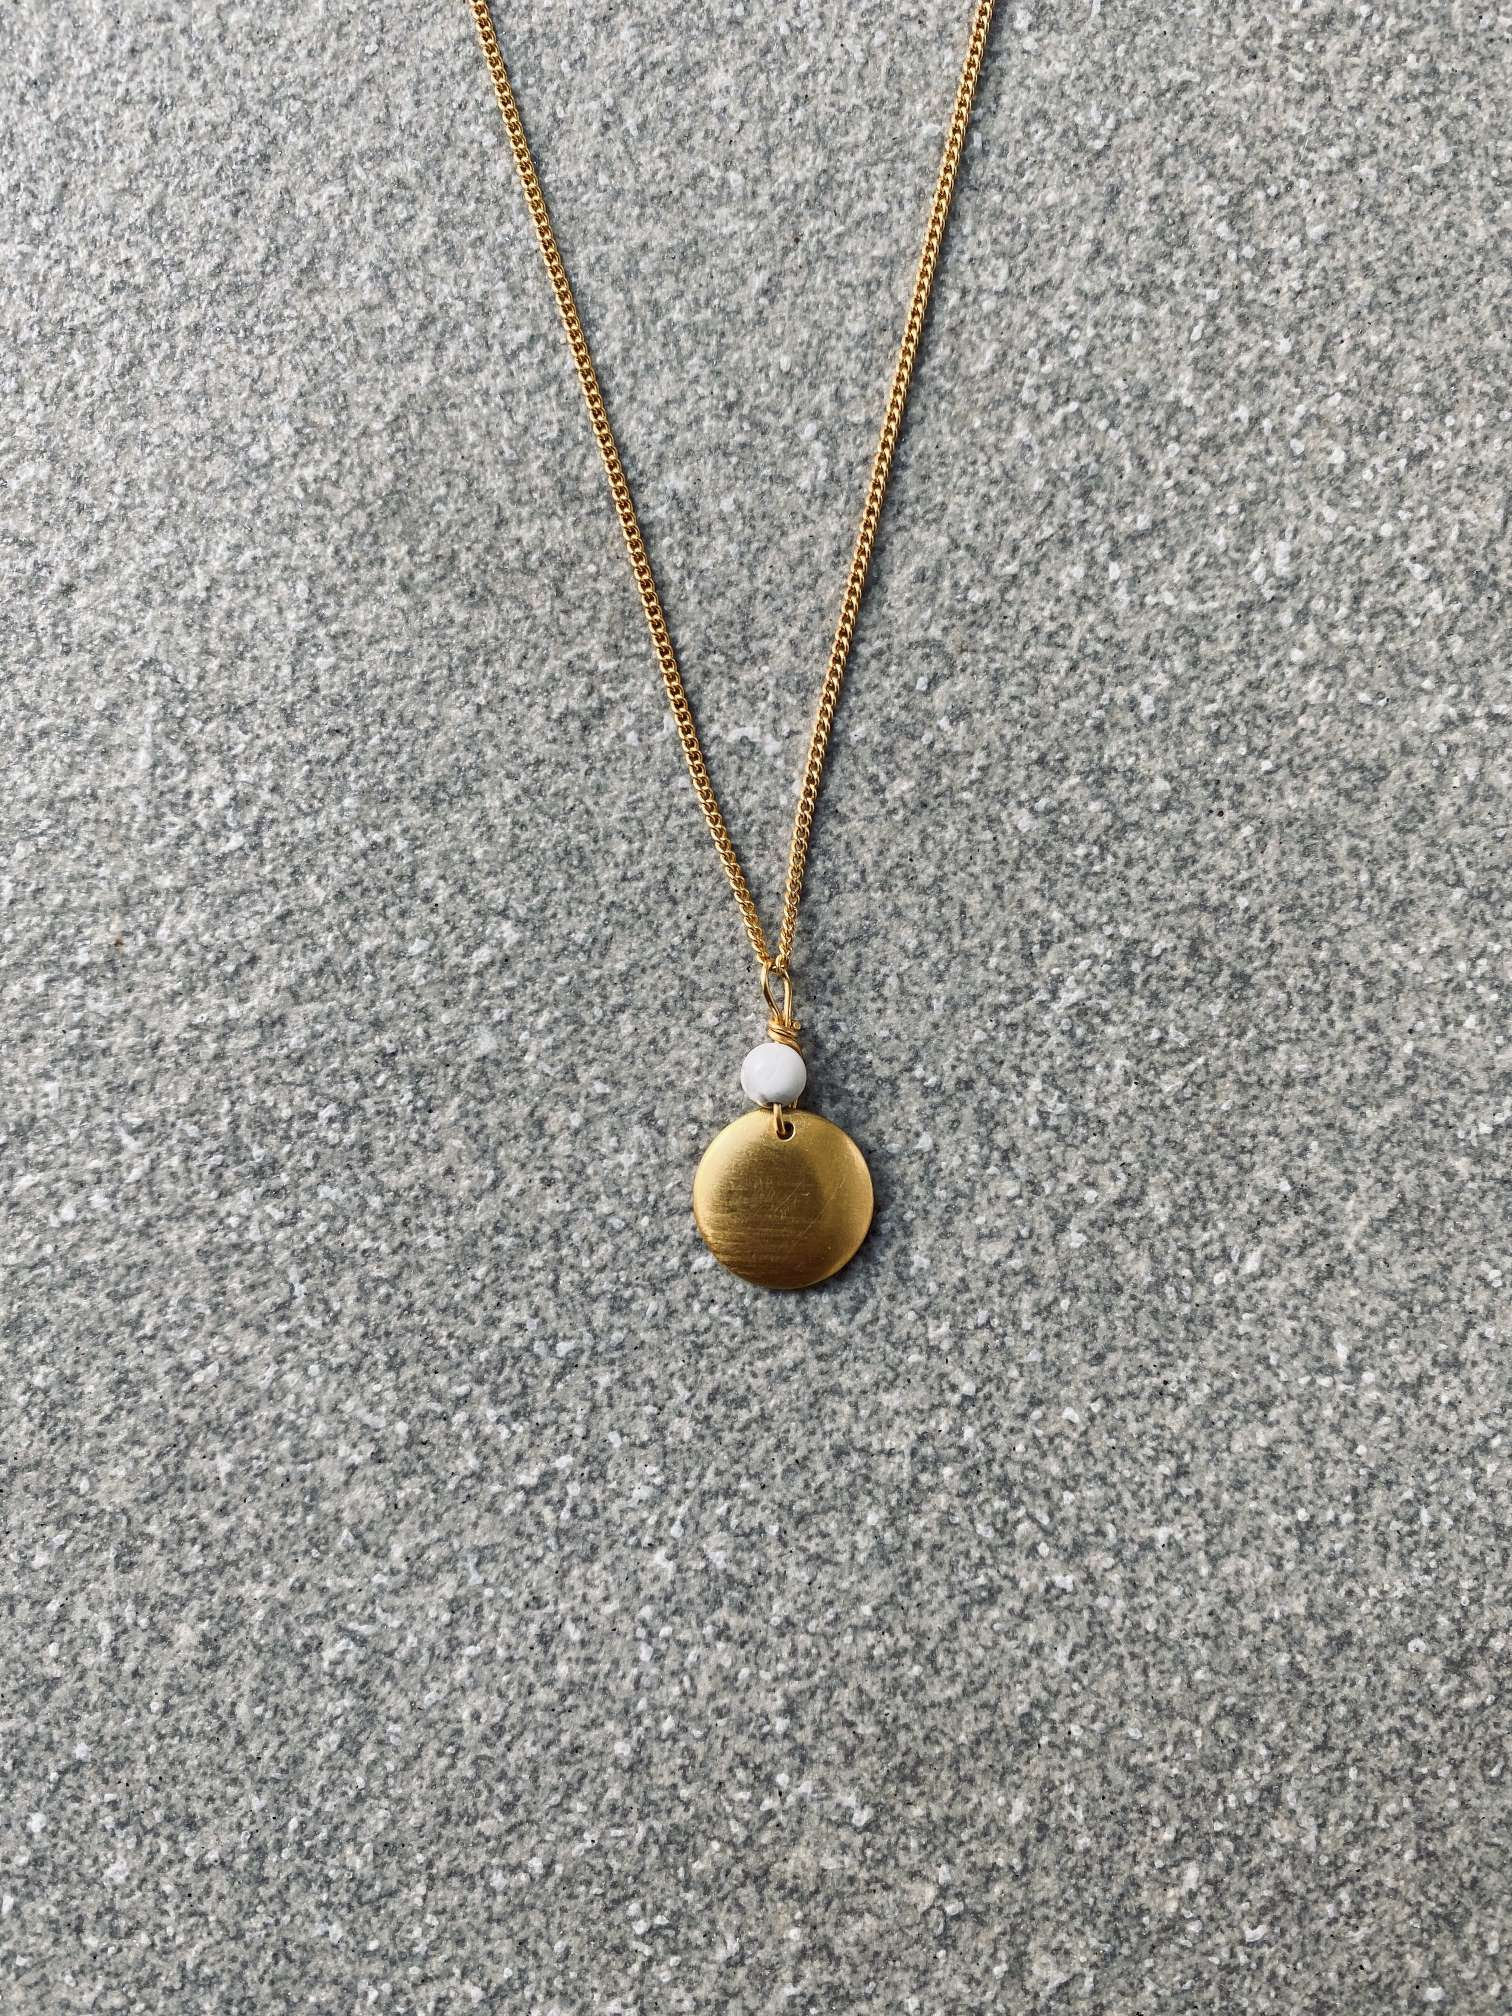 ANAM Halskette | Necklace Gold - The Santai Collection